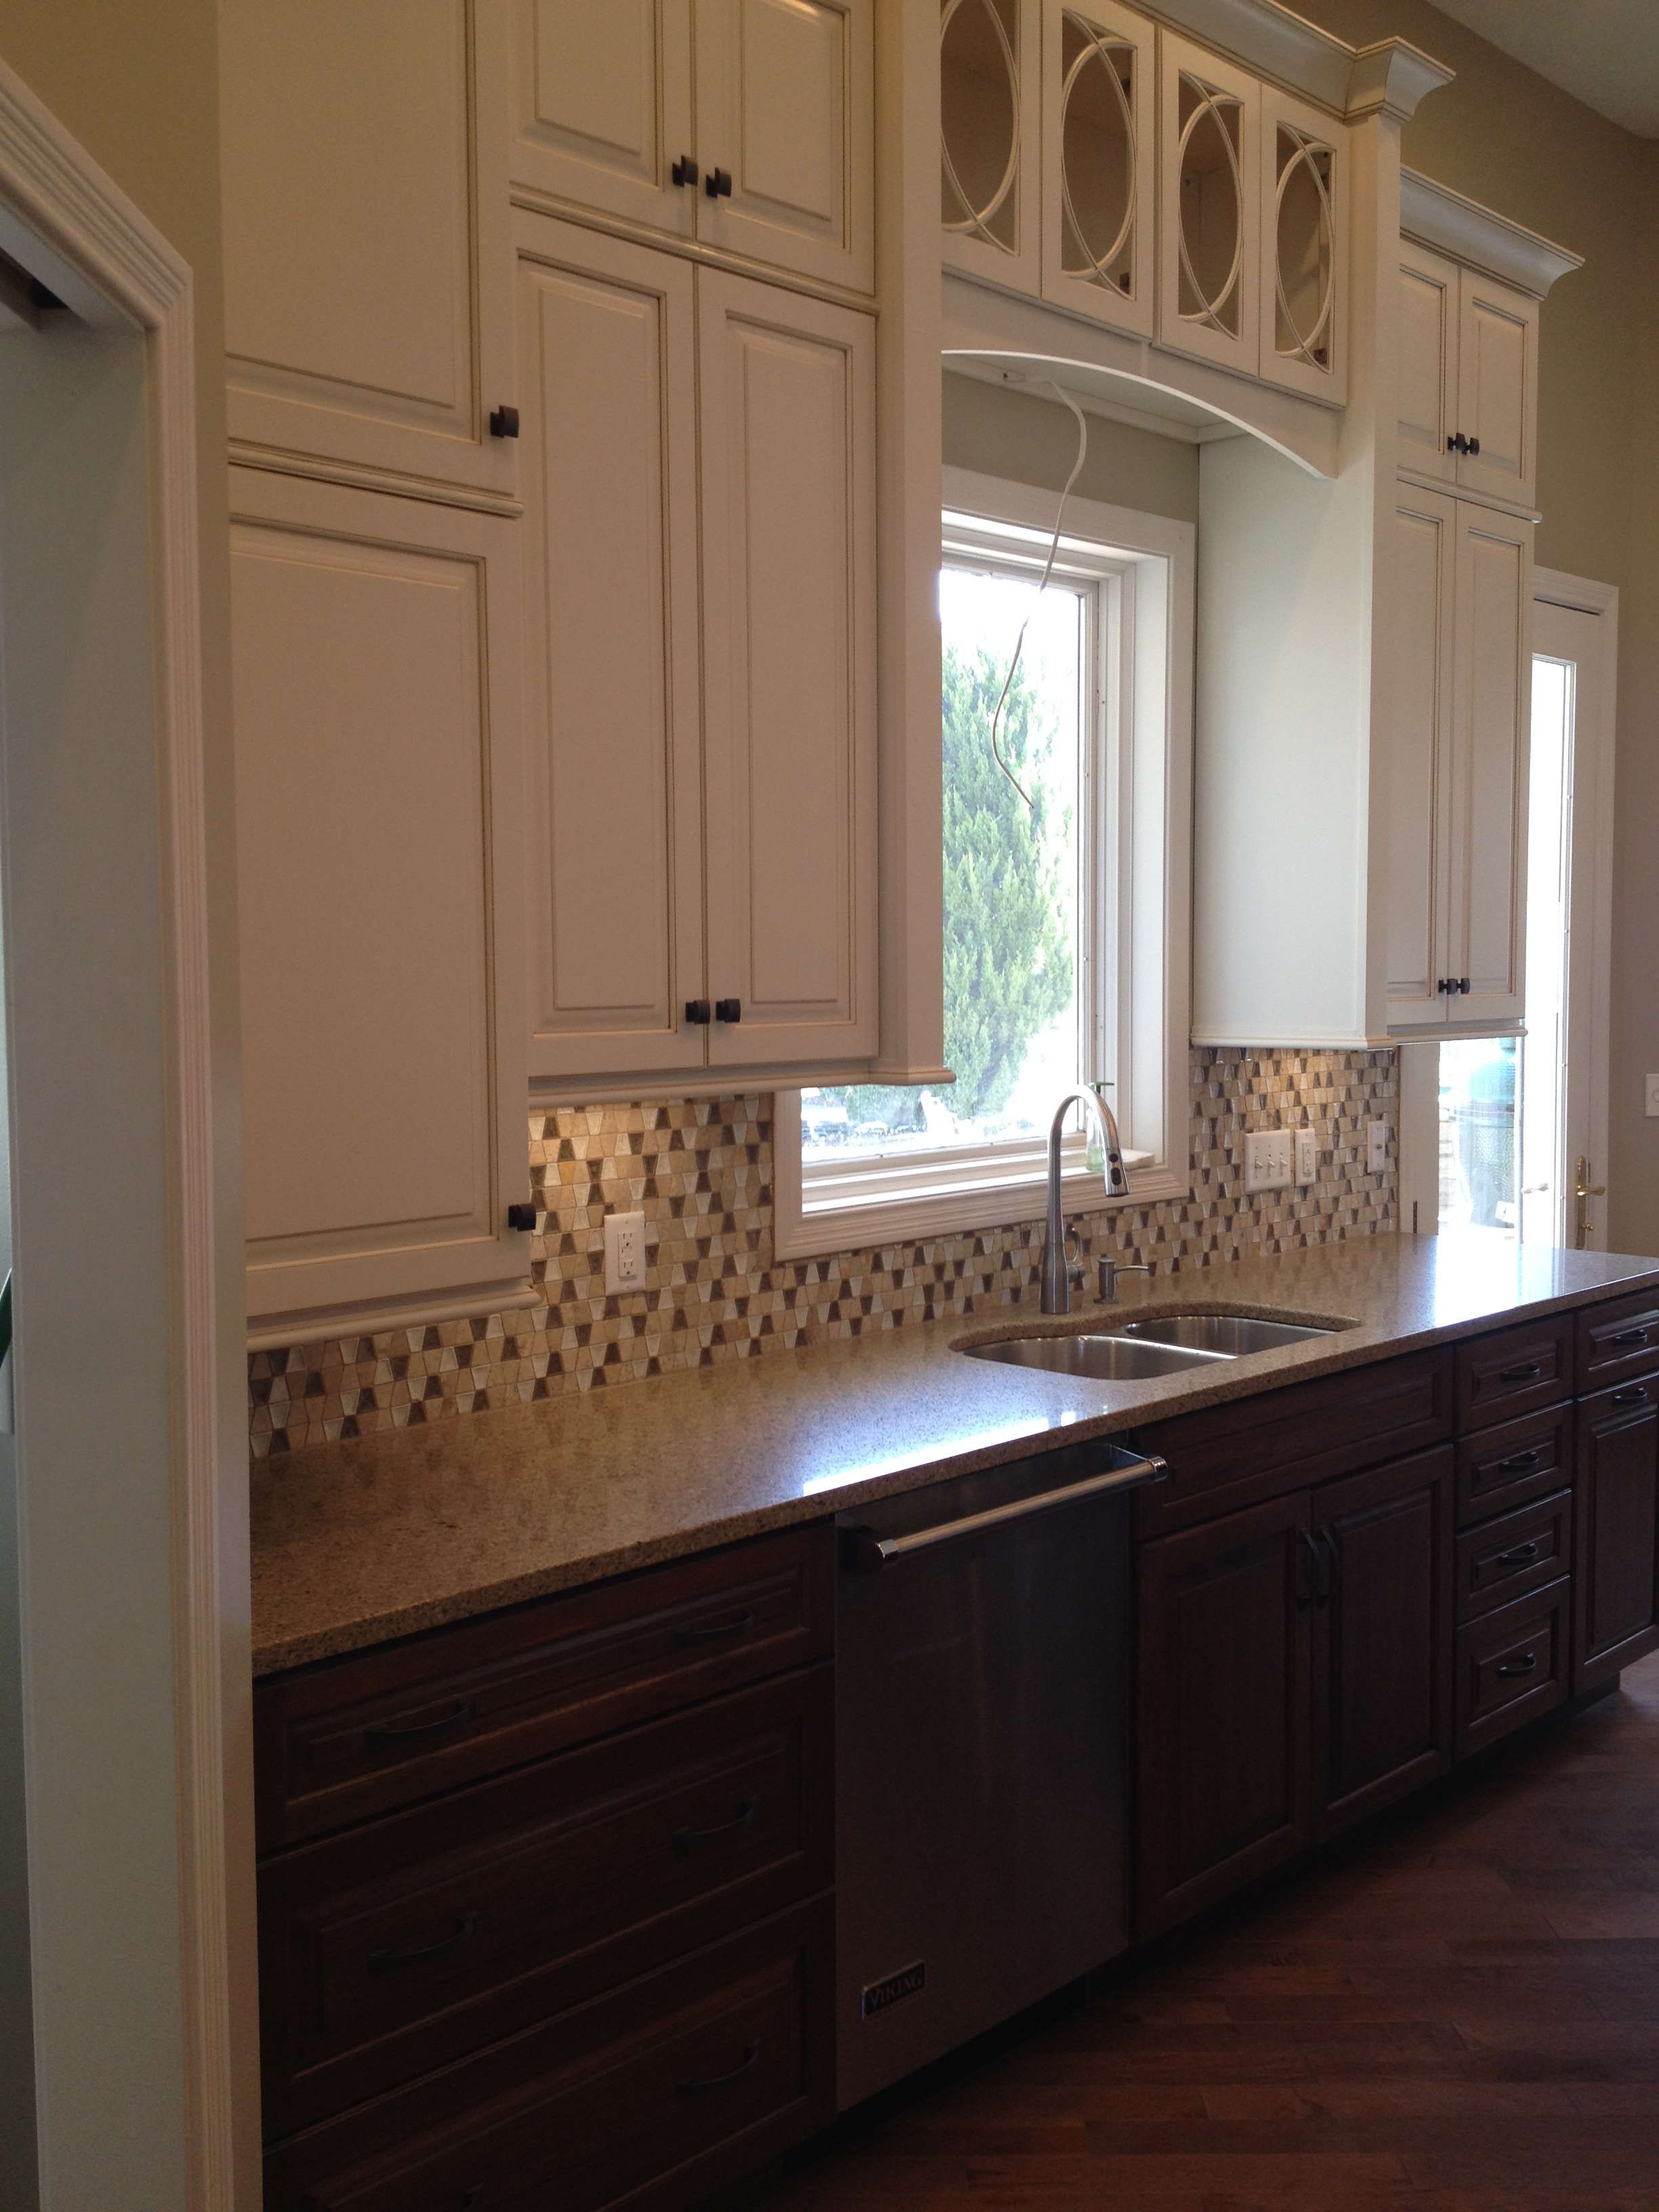 Kitchen Cabinets Two Toned Rci Interior Design